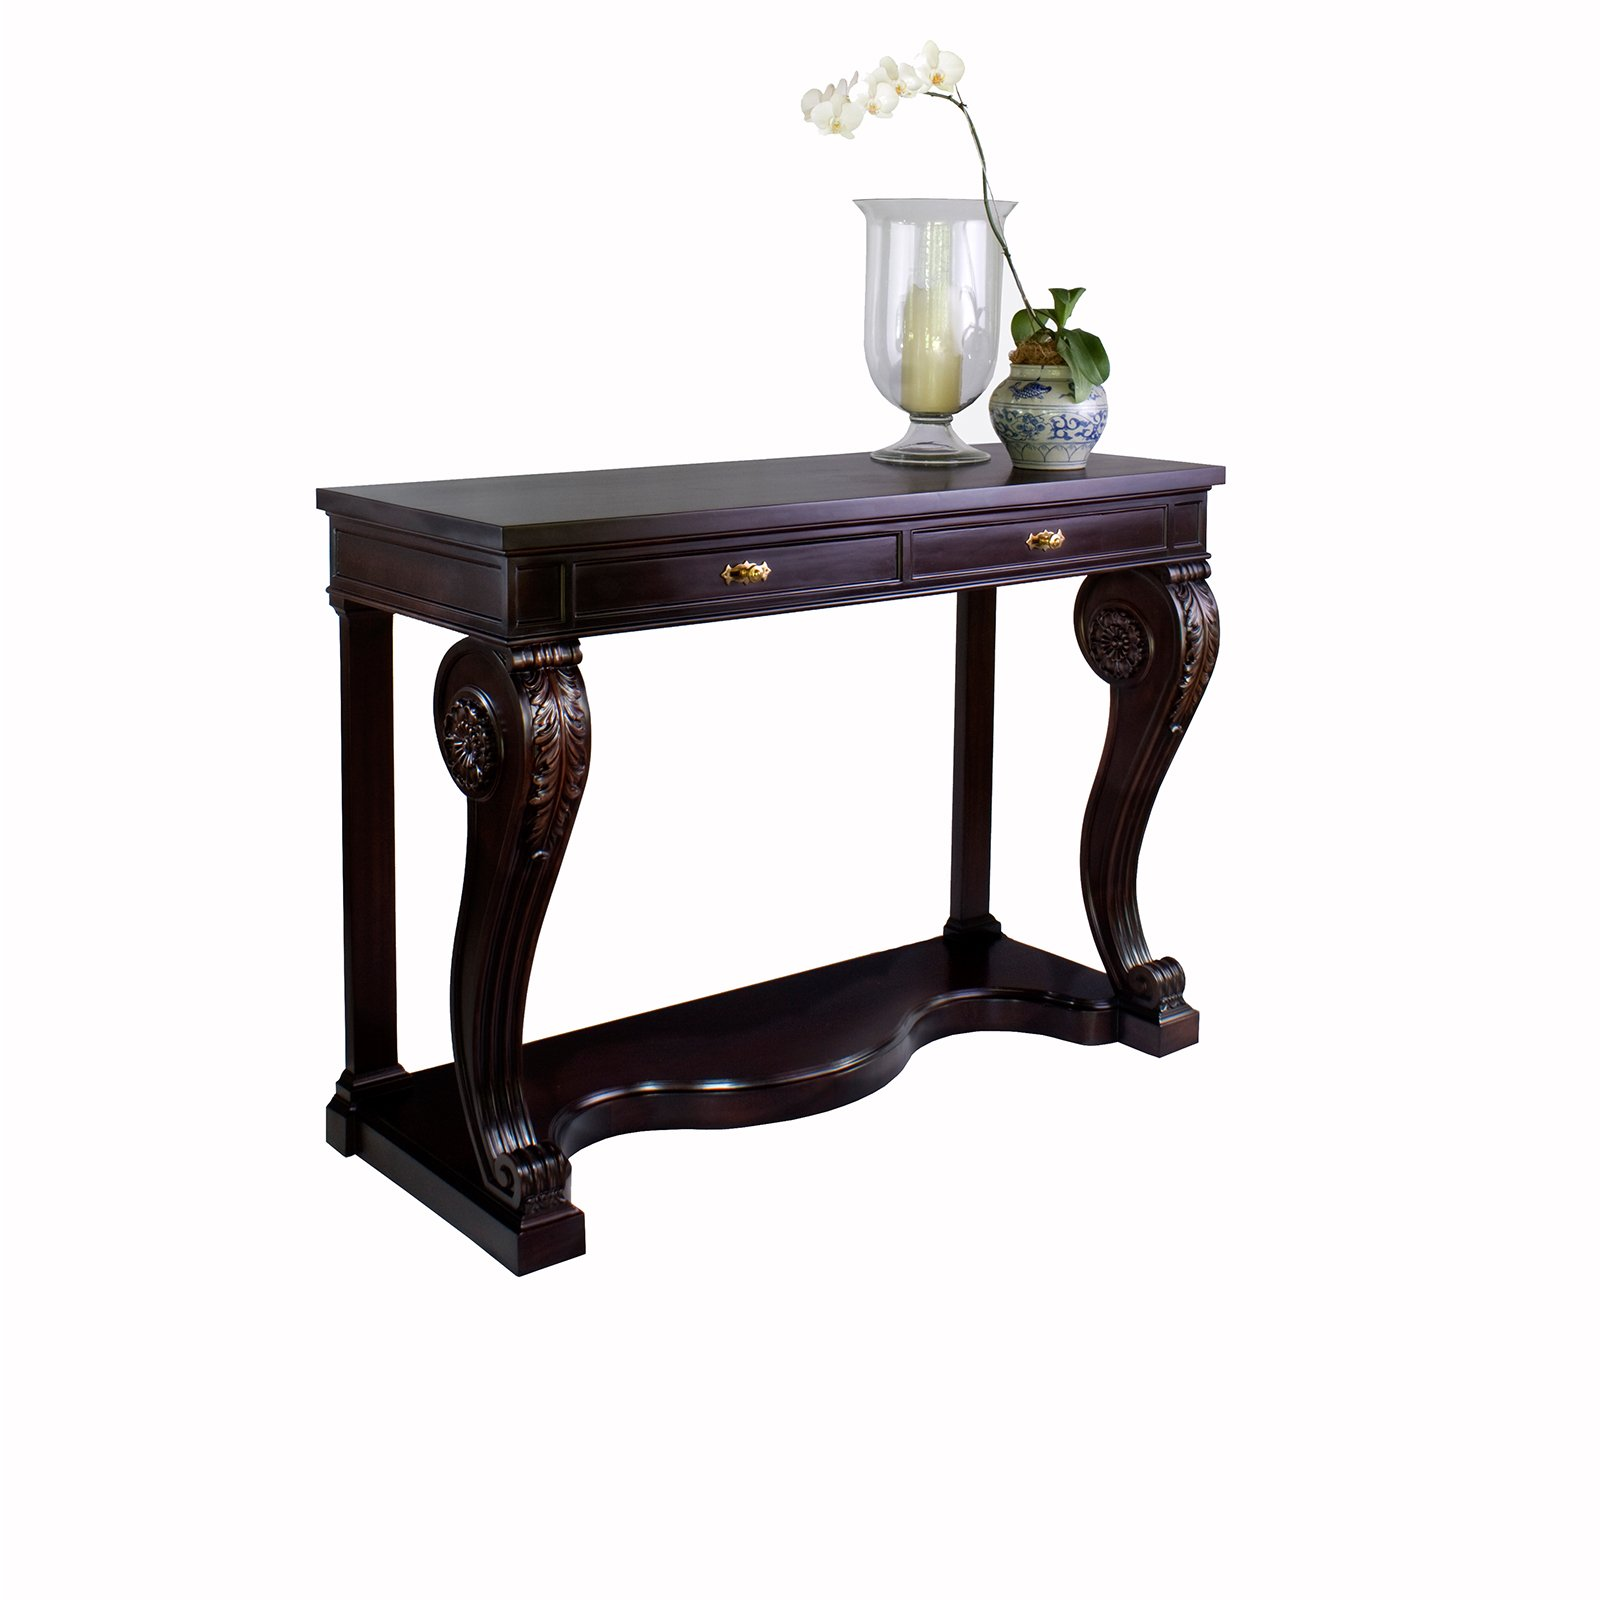 SOMERSET CONSOLE - STUART MEMBERY HOME COLLECTION